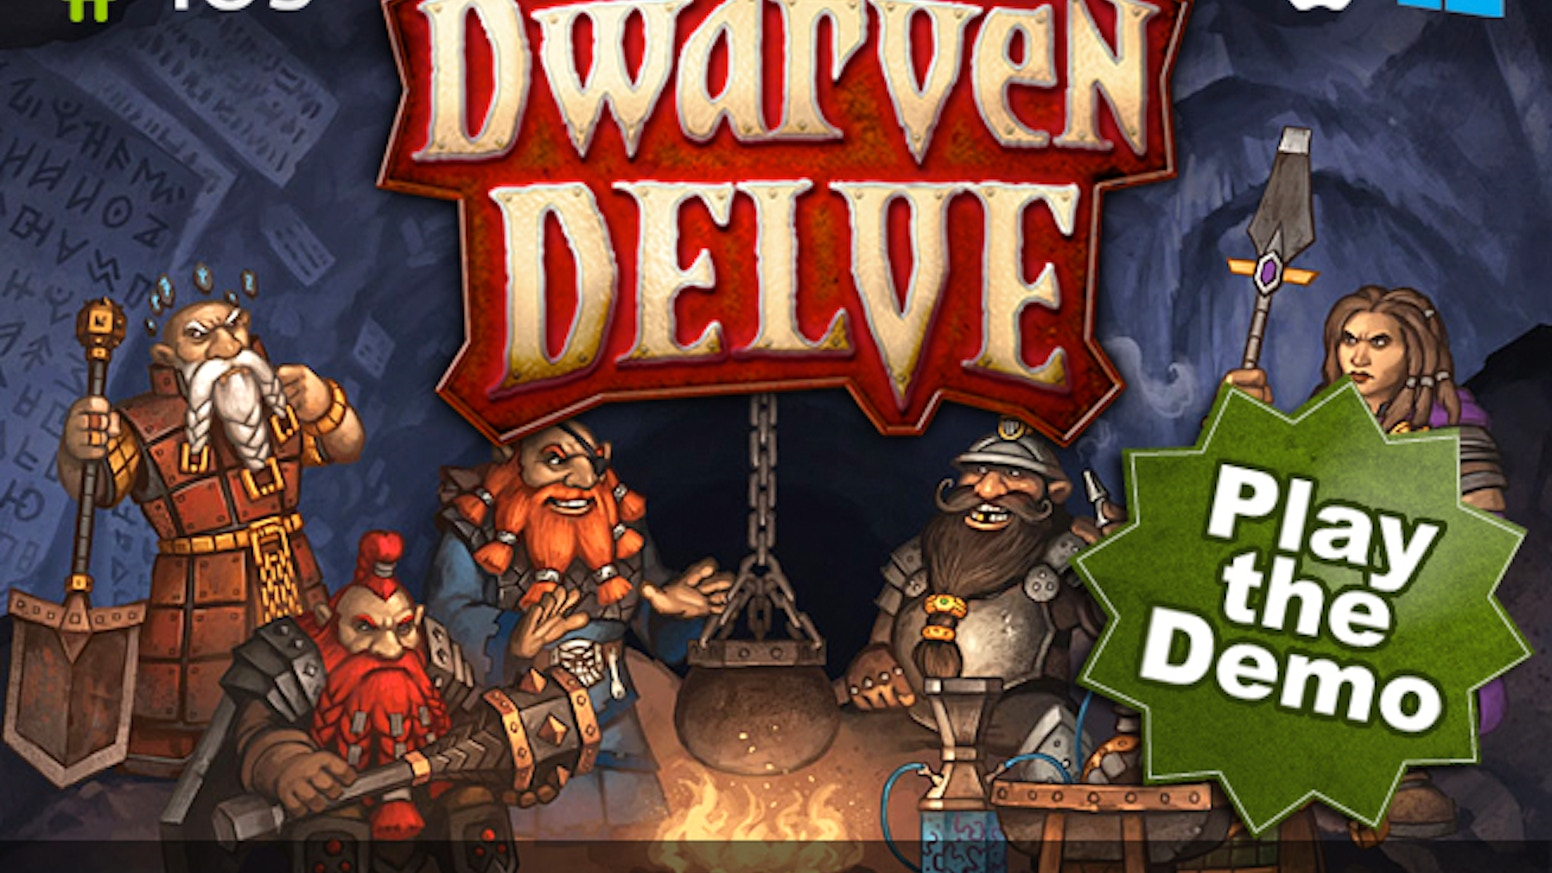 Dwarven Delve - An Action Dungeon Crawl with a Twist by TinkerHouse